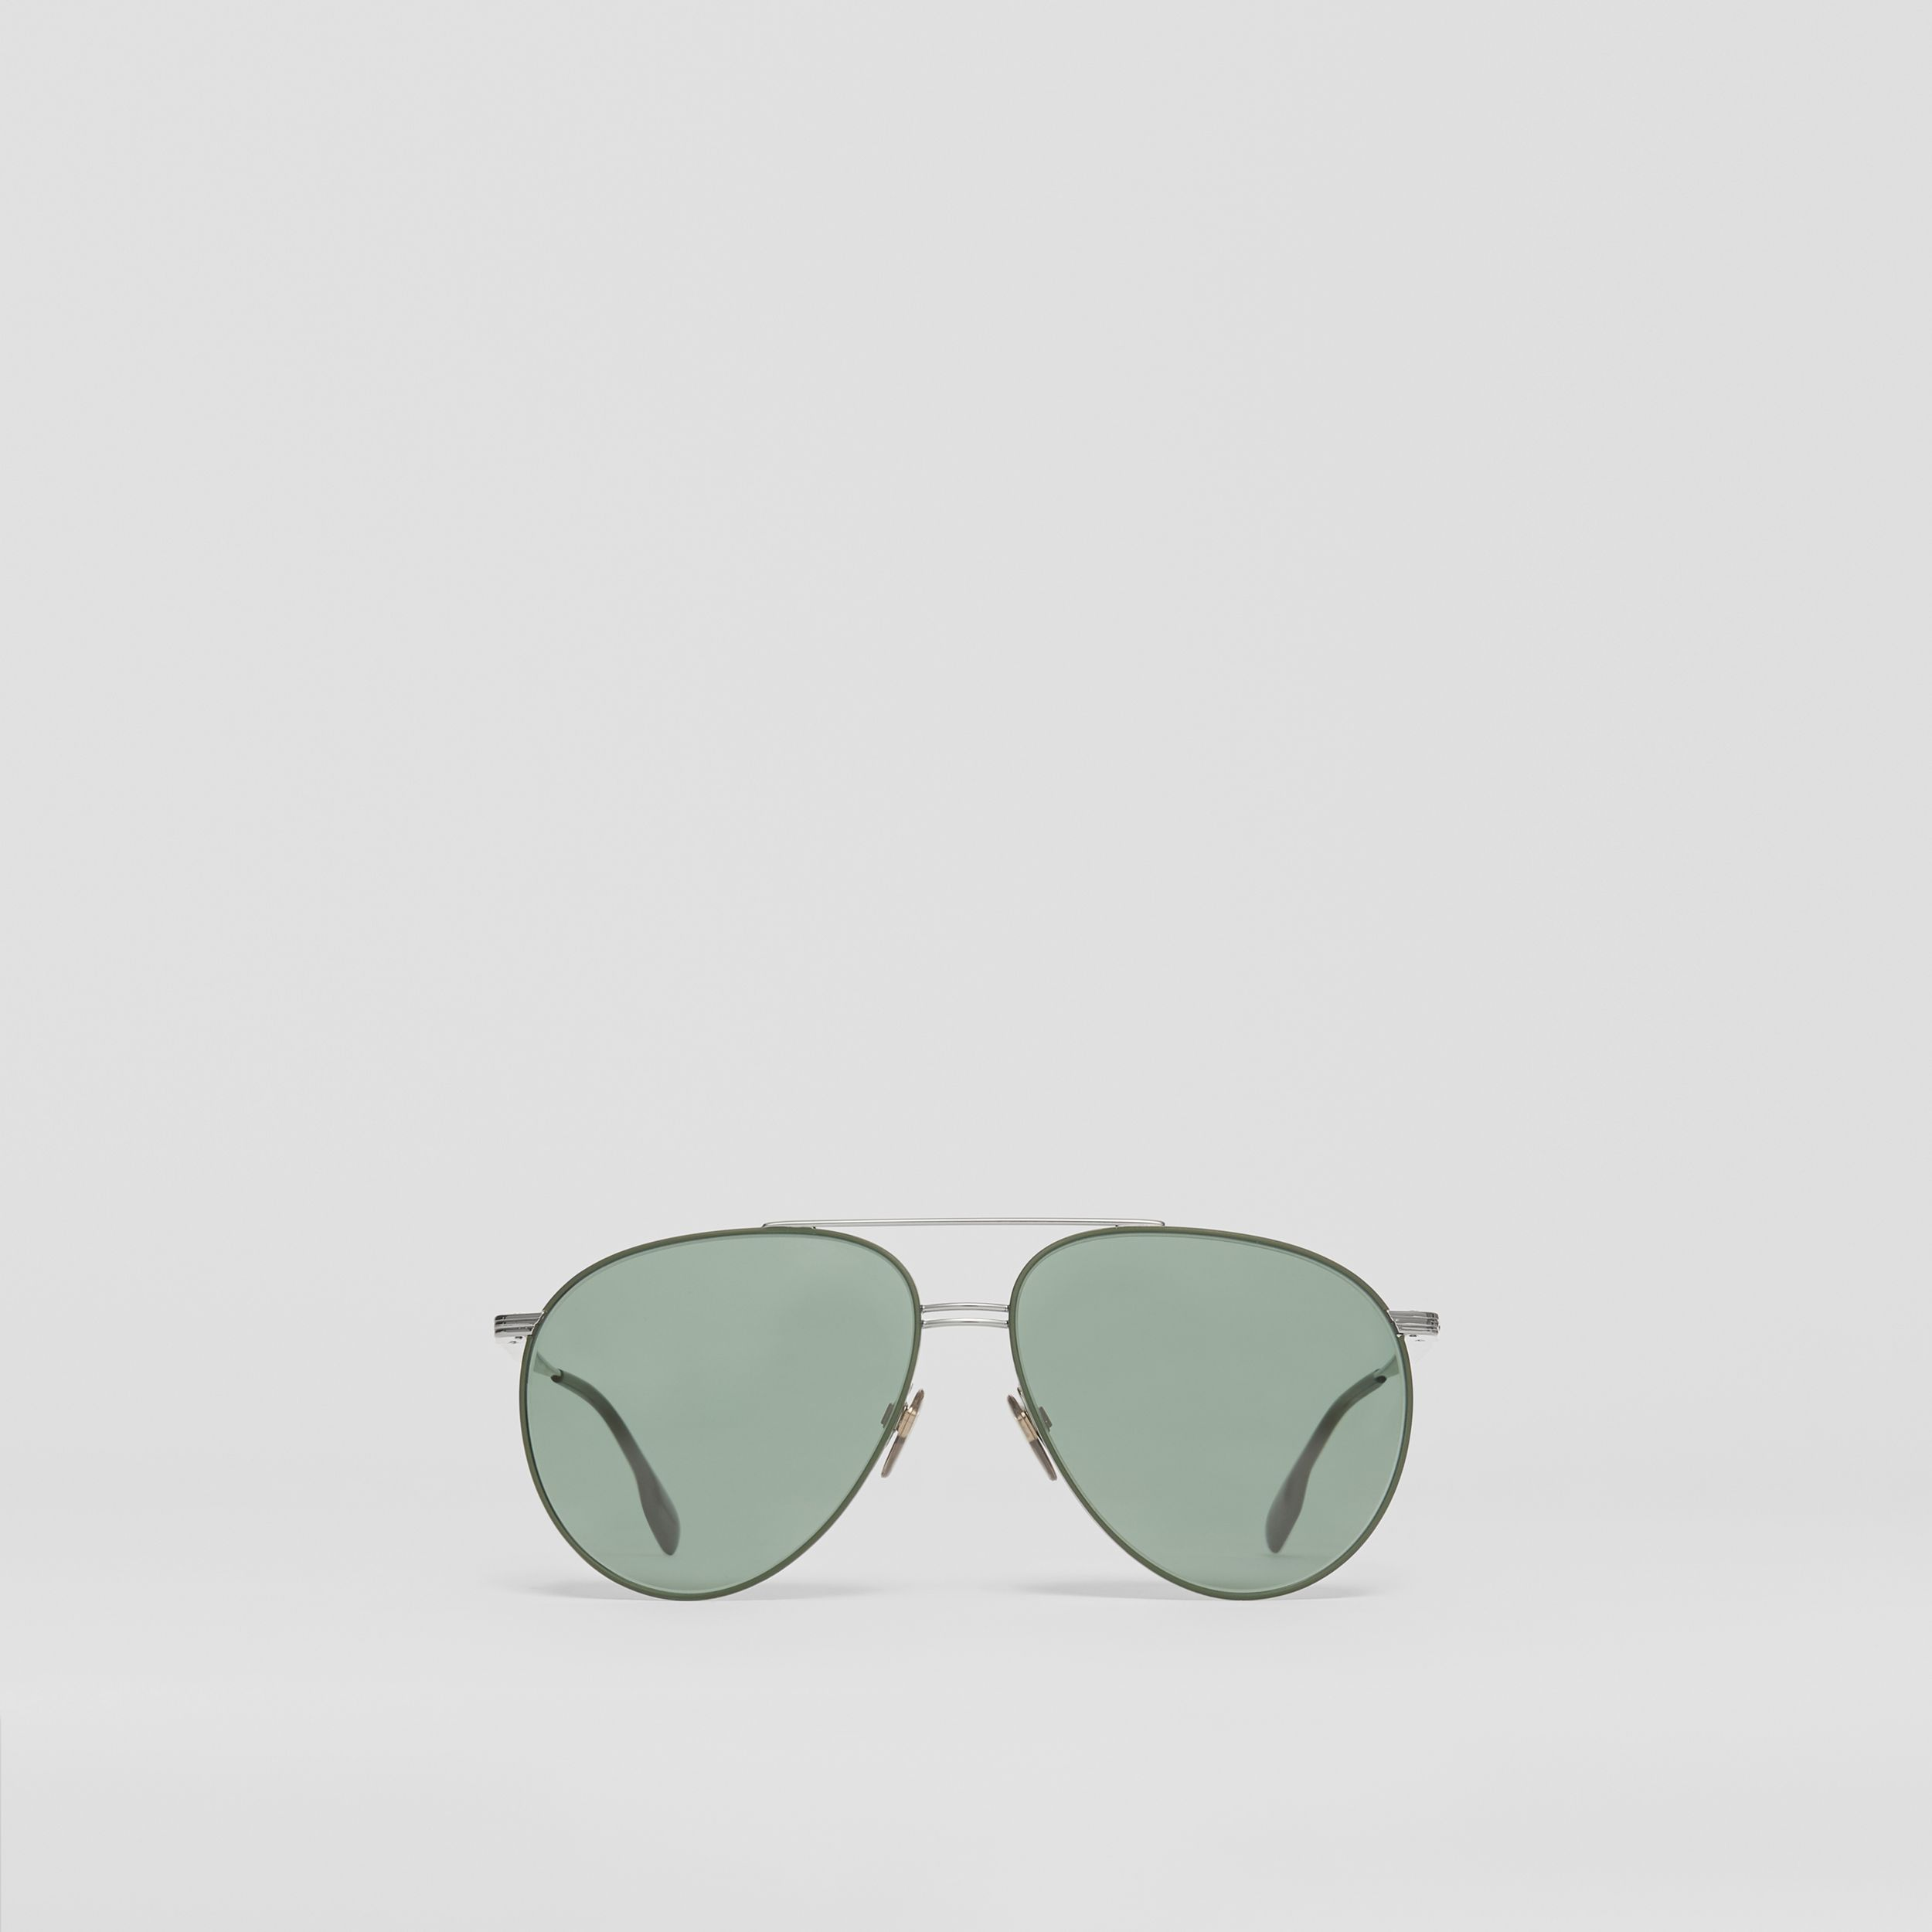 Top Bar Detail Pilot Sunglasses in Gunmetal/dark Green - Men | Burberry - 1